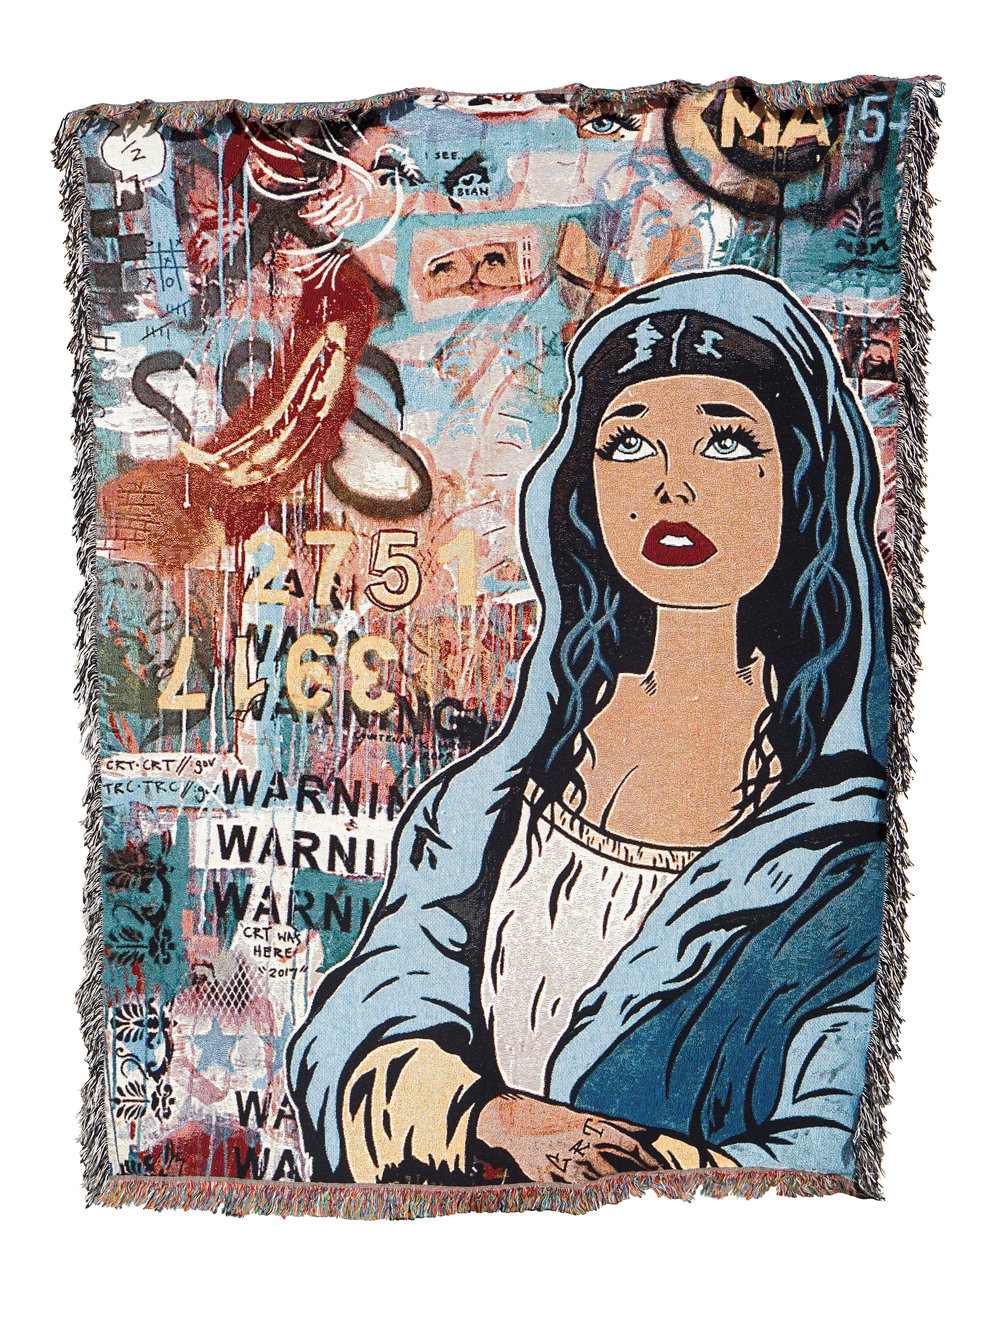 'Dusty Angel' Rug  152cm x 203cm 100% Cotton, Woven Rug printed 2018  Sold